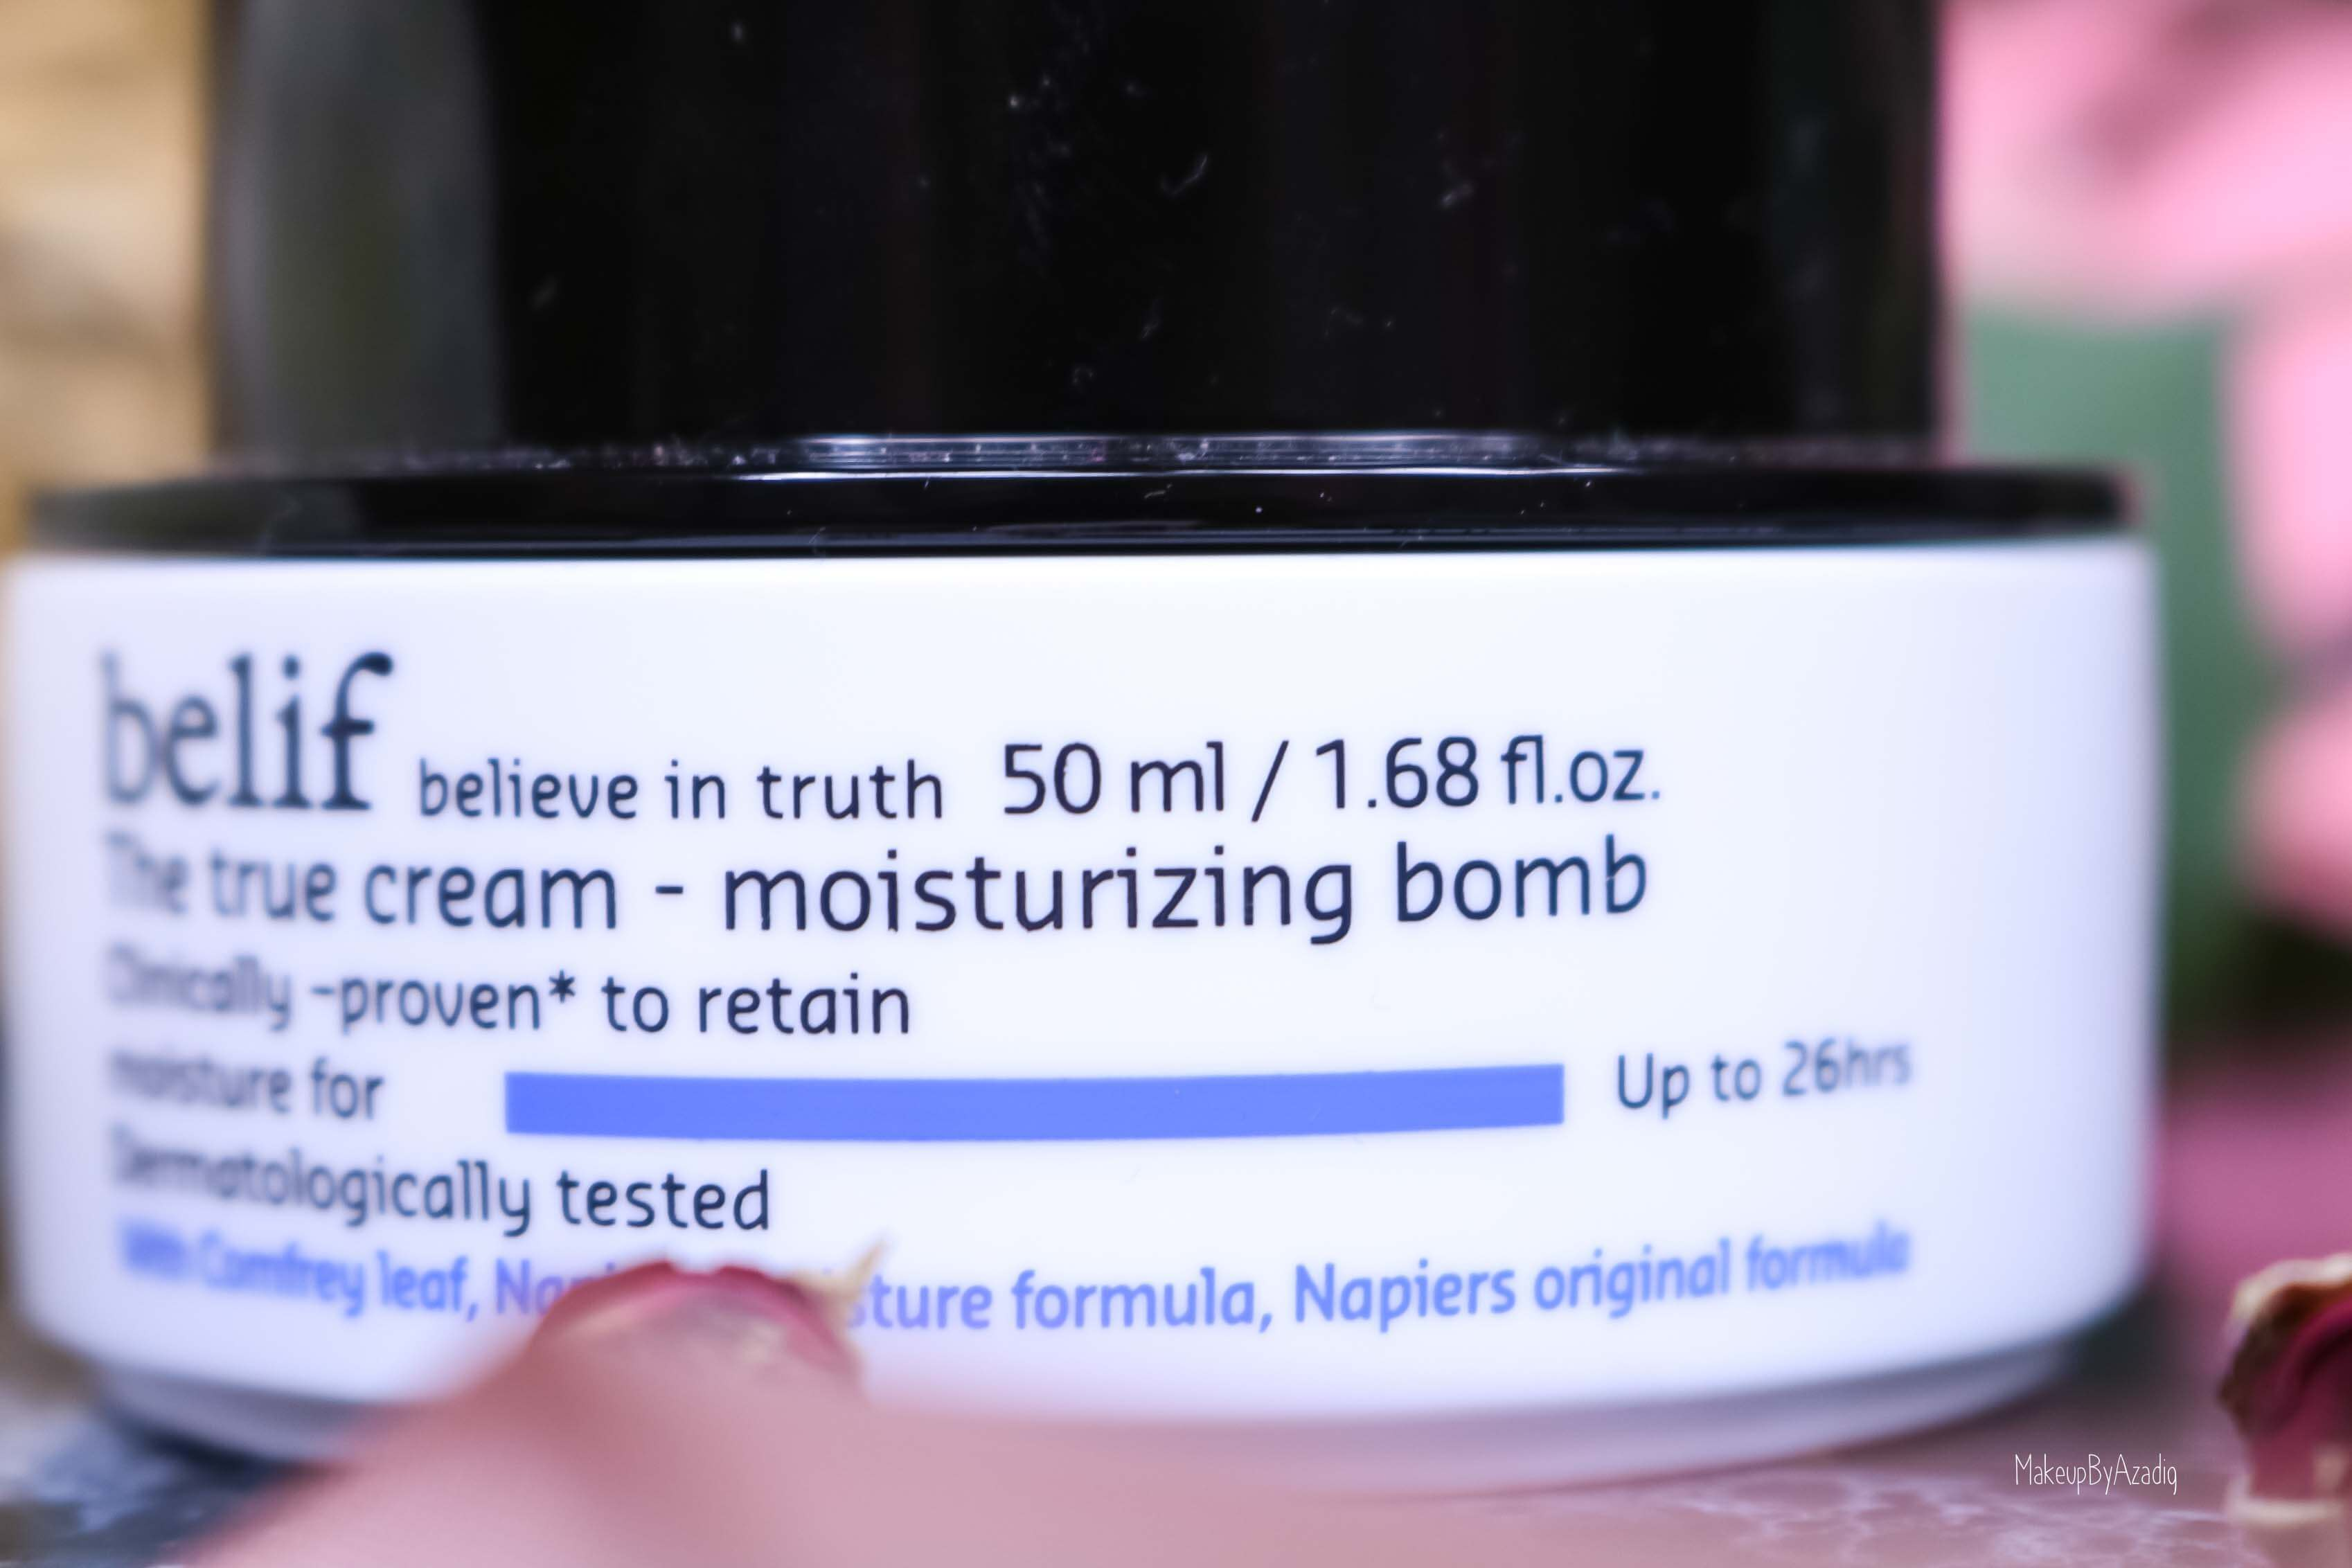 revue-review-creme-soin-belif-the-true-cream-bomb-avis-prix-sephora-france-makeupbyazadig-hydratant-visage-quantite